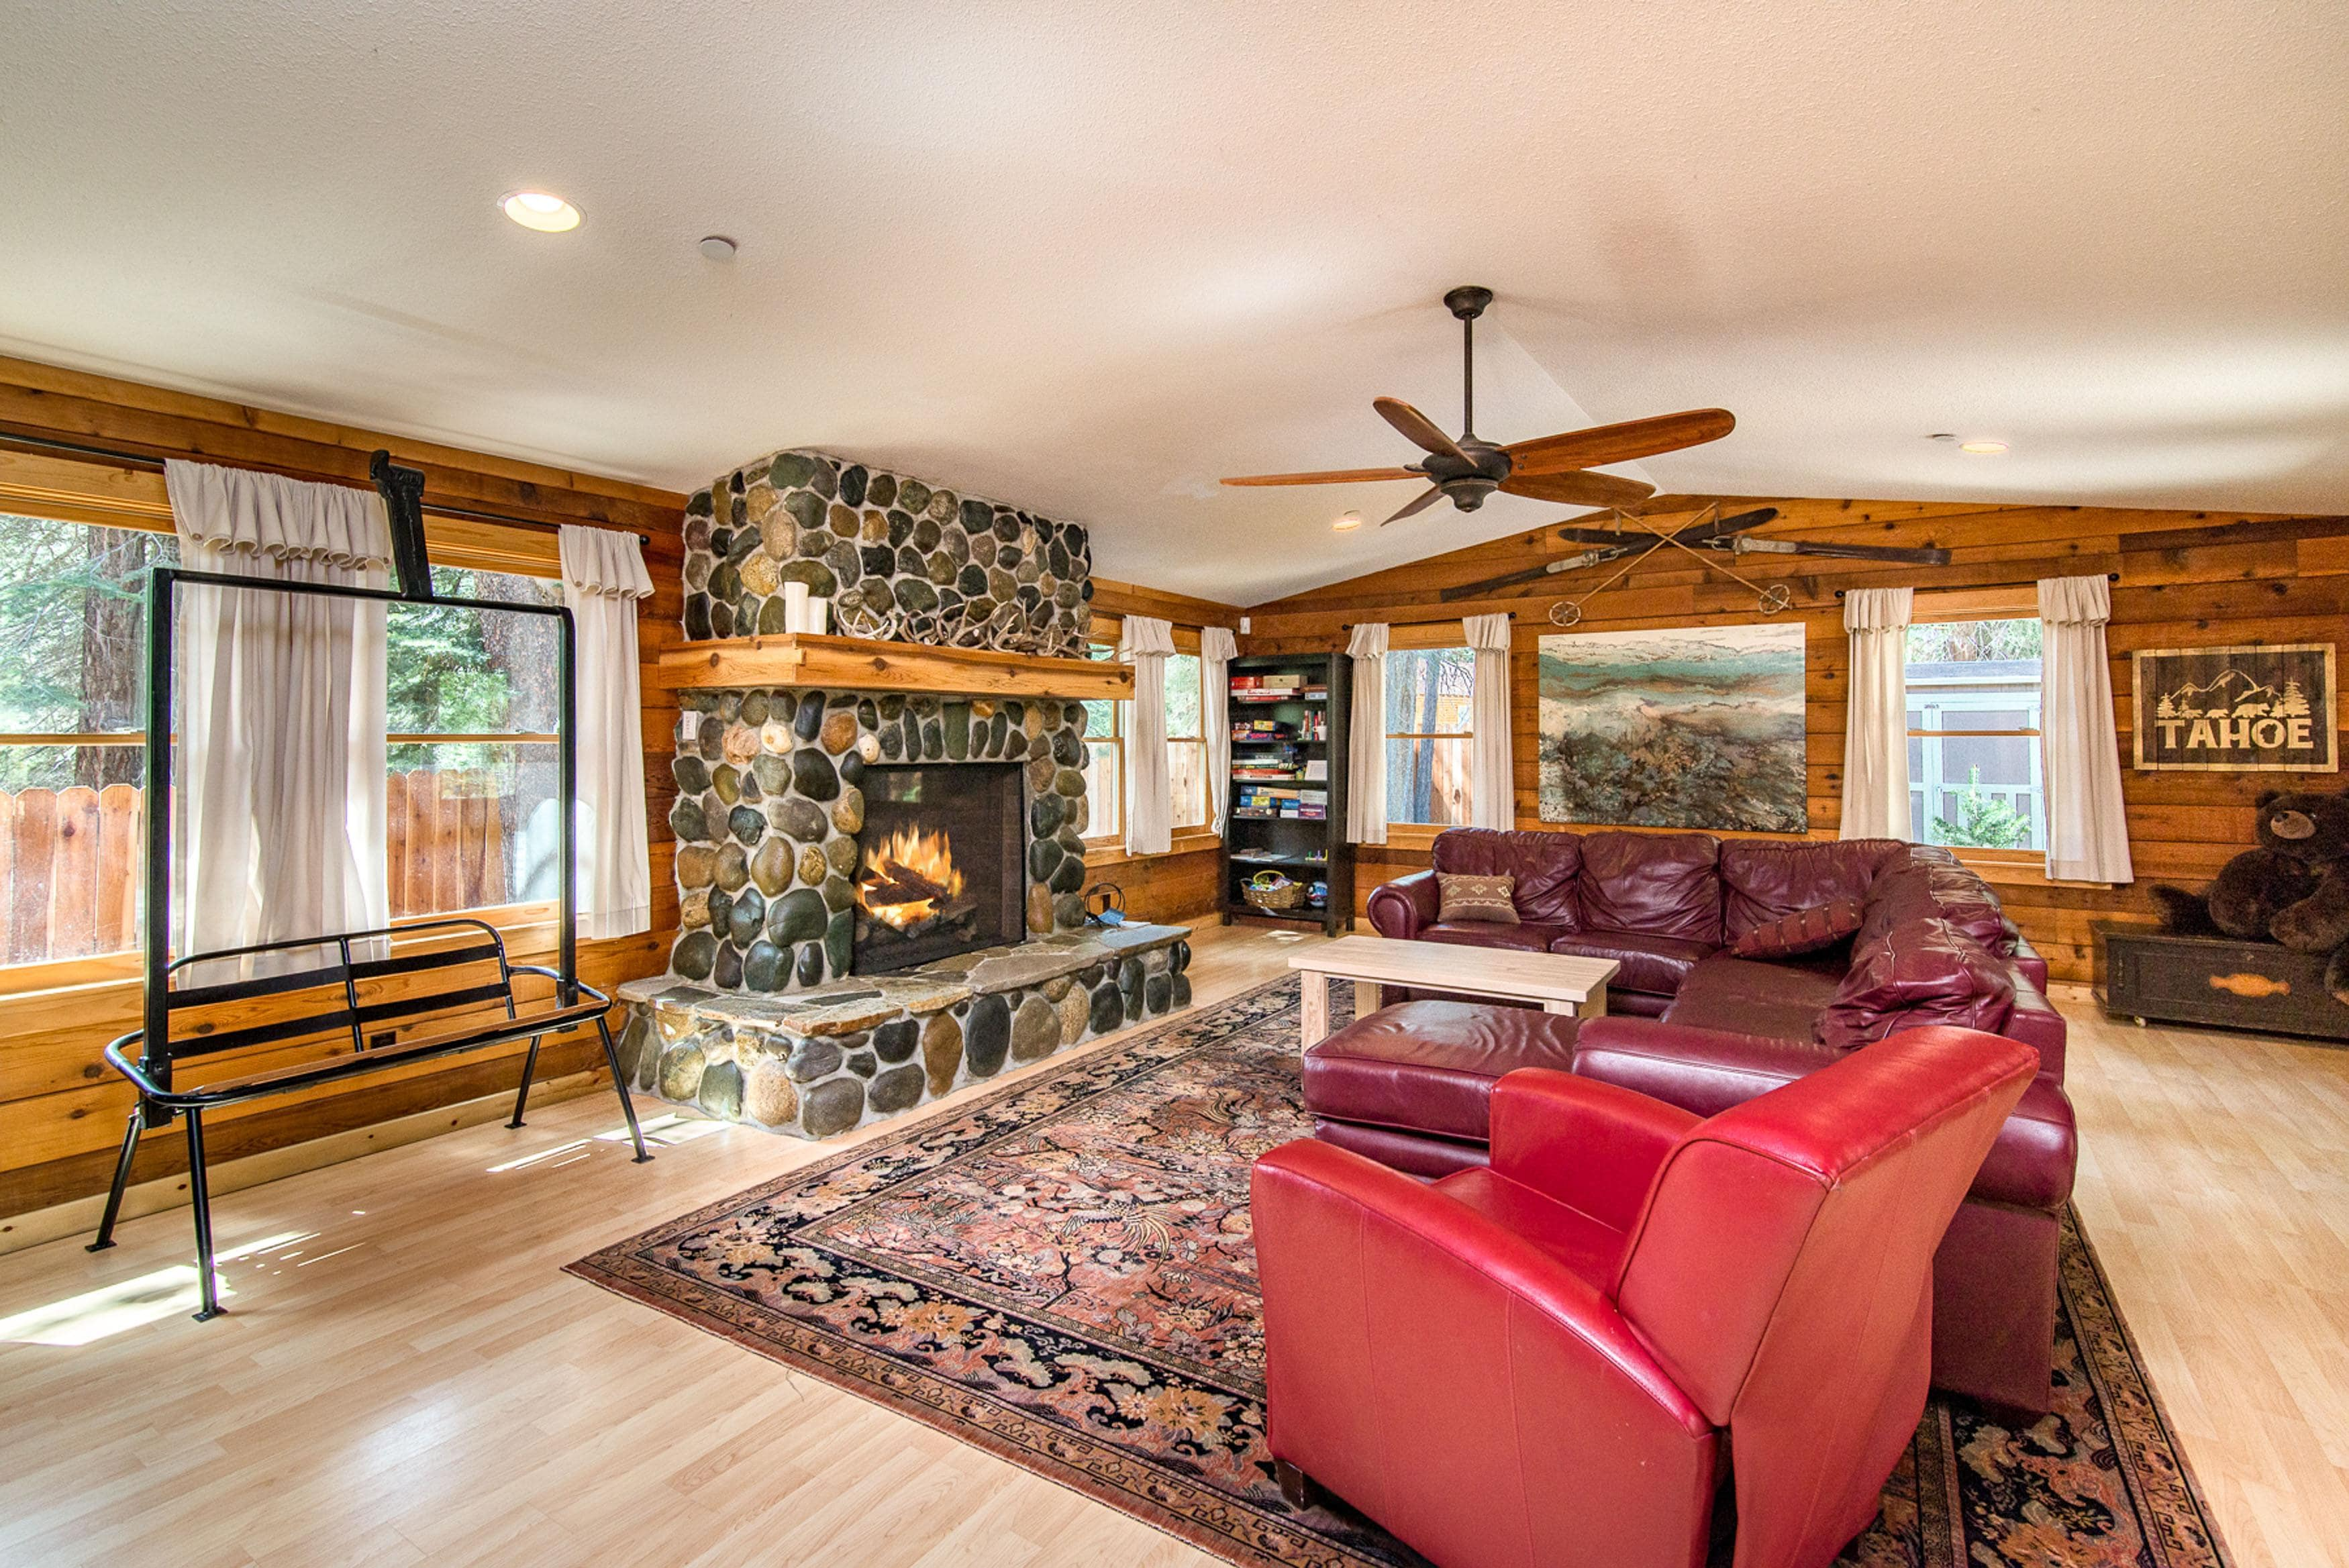 The family room provides comfortable seating around a majestic stone fireplace.